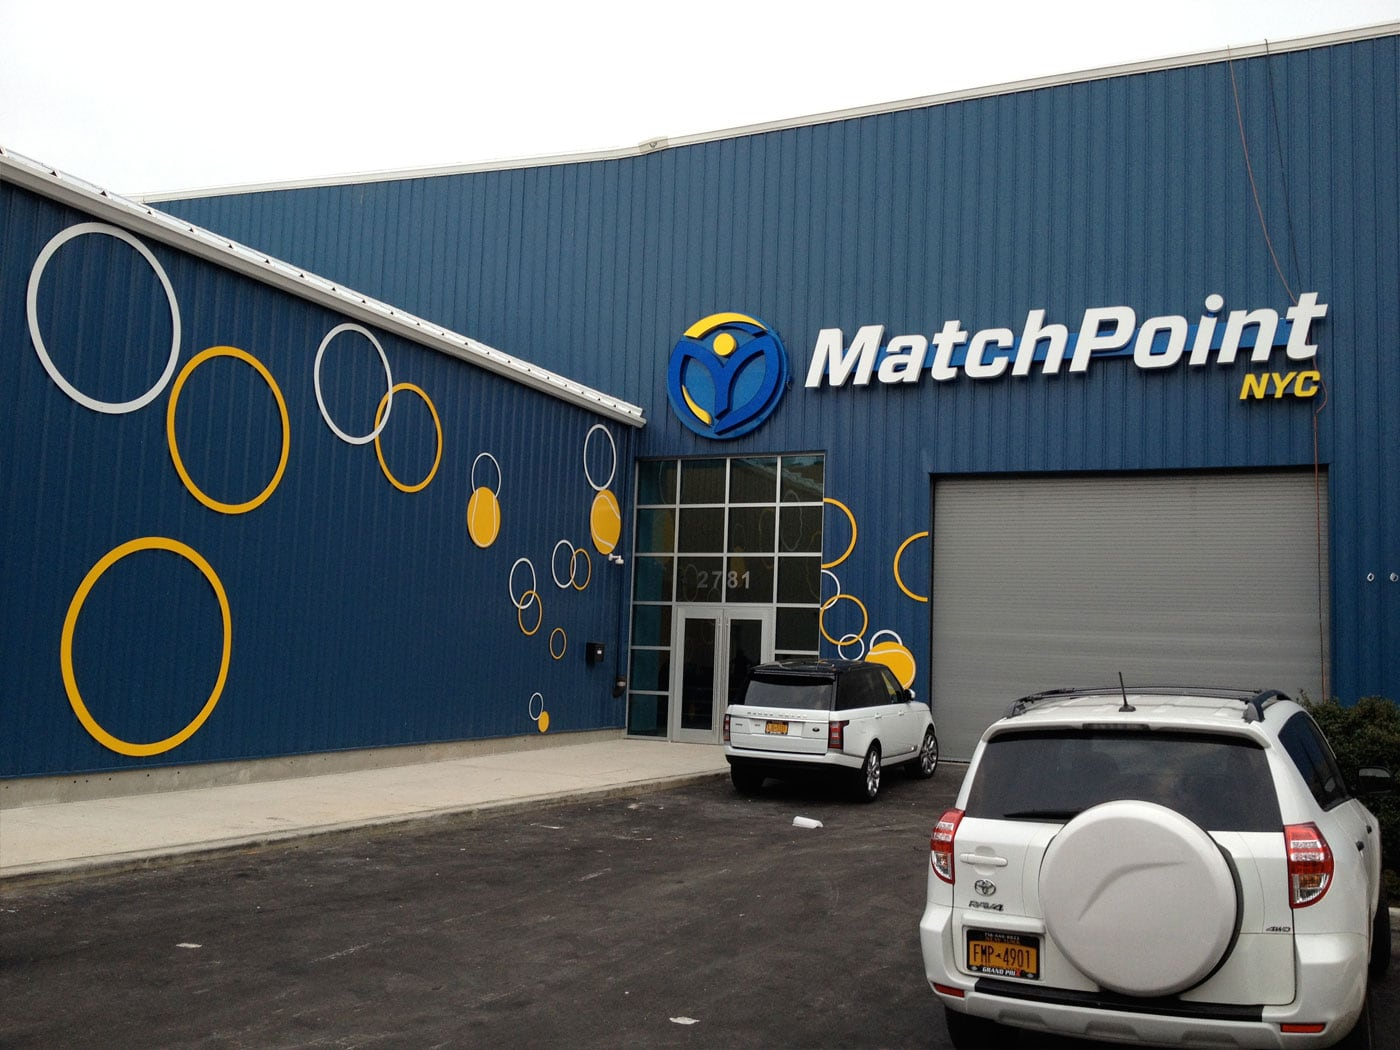 MatchPoint NYC Signage Designed by Bill Brissette